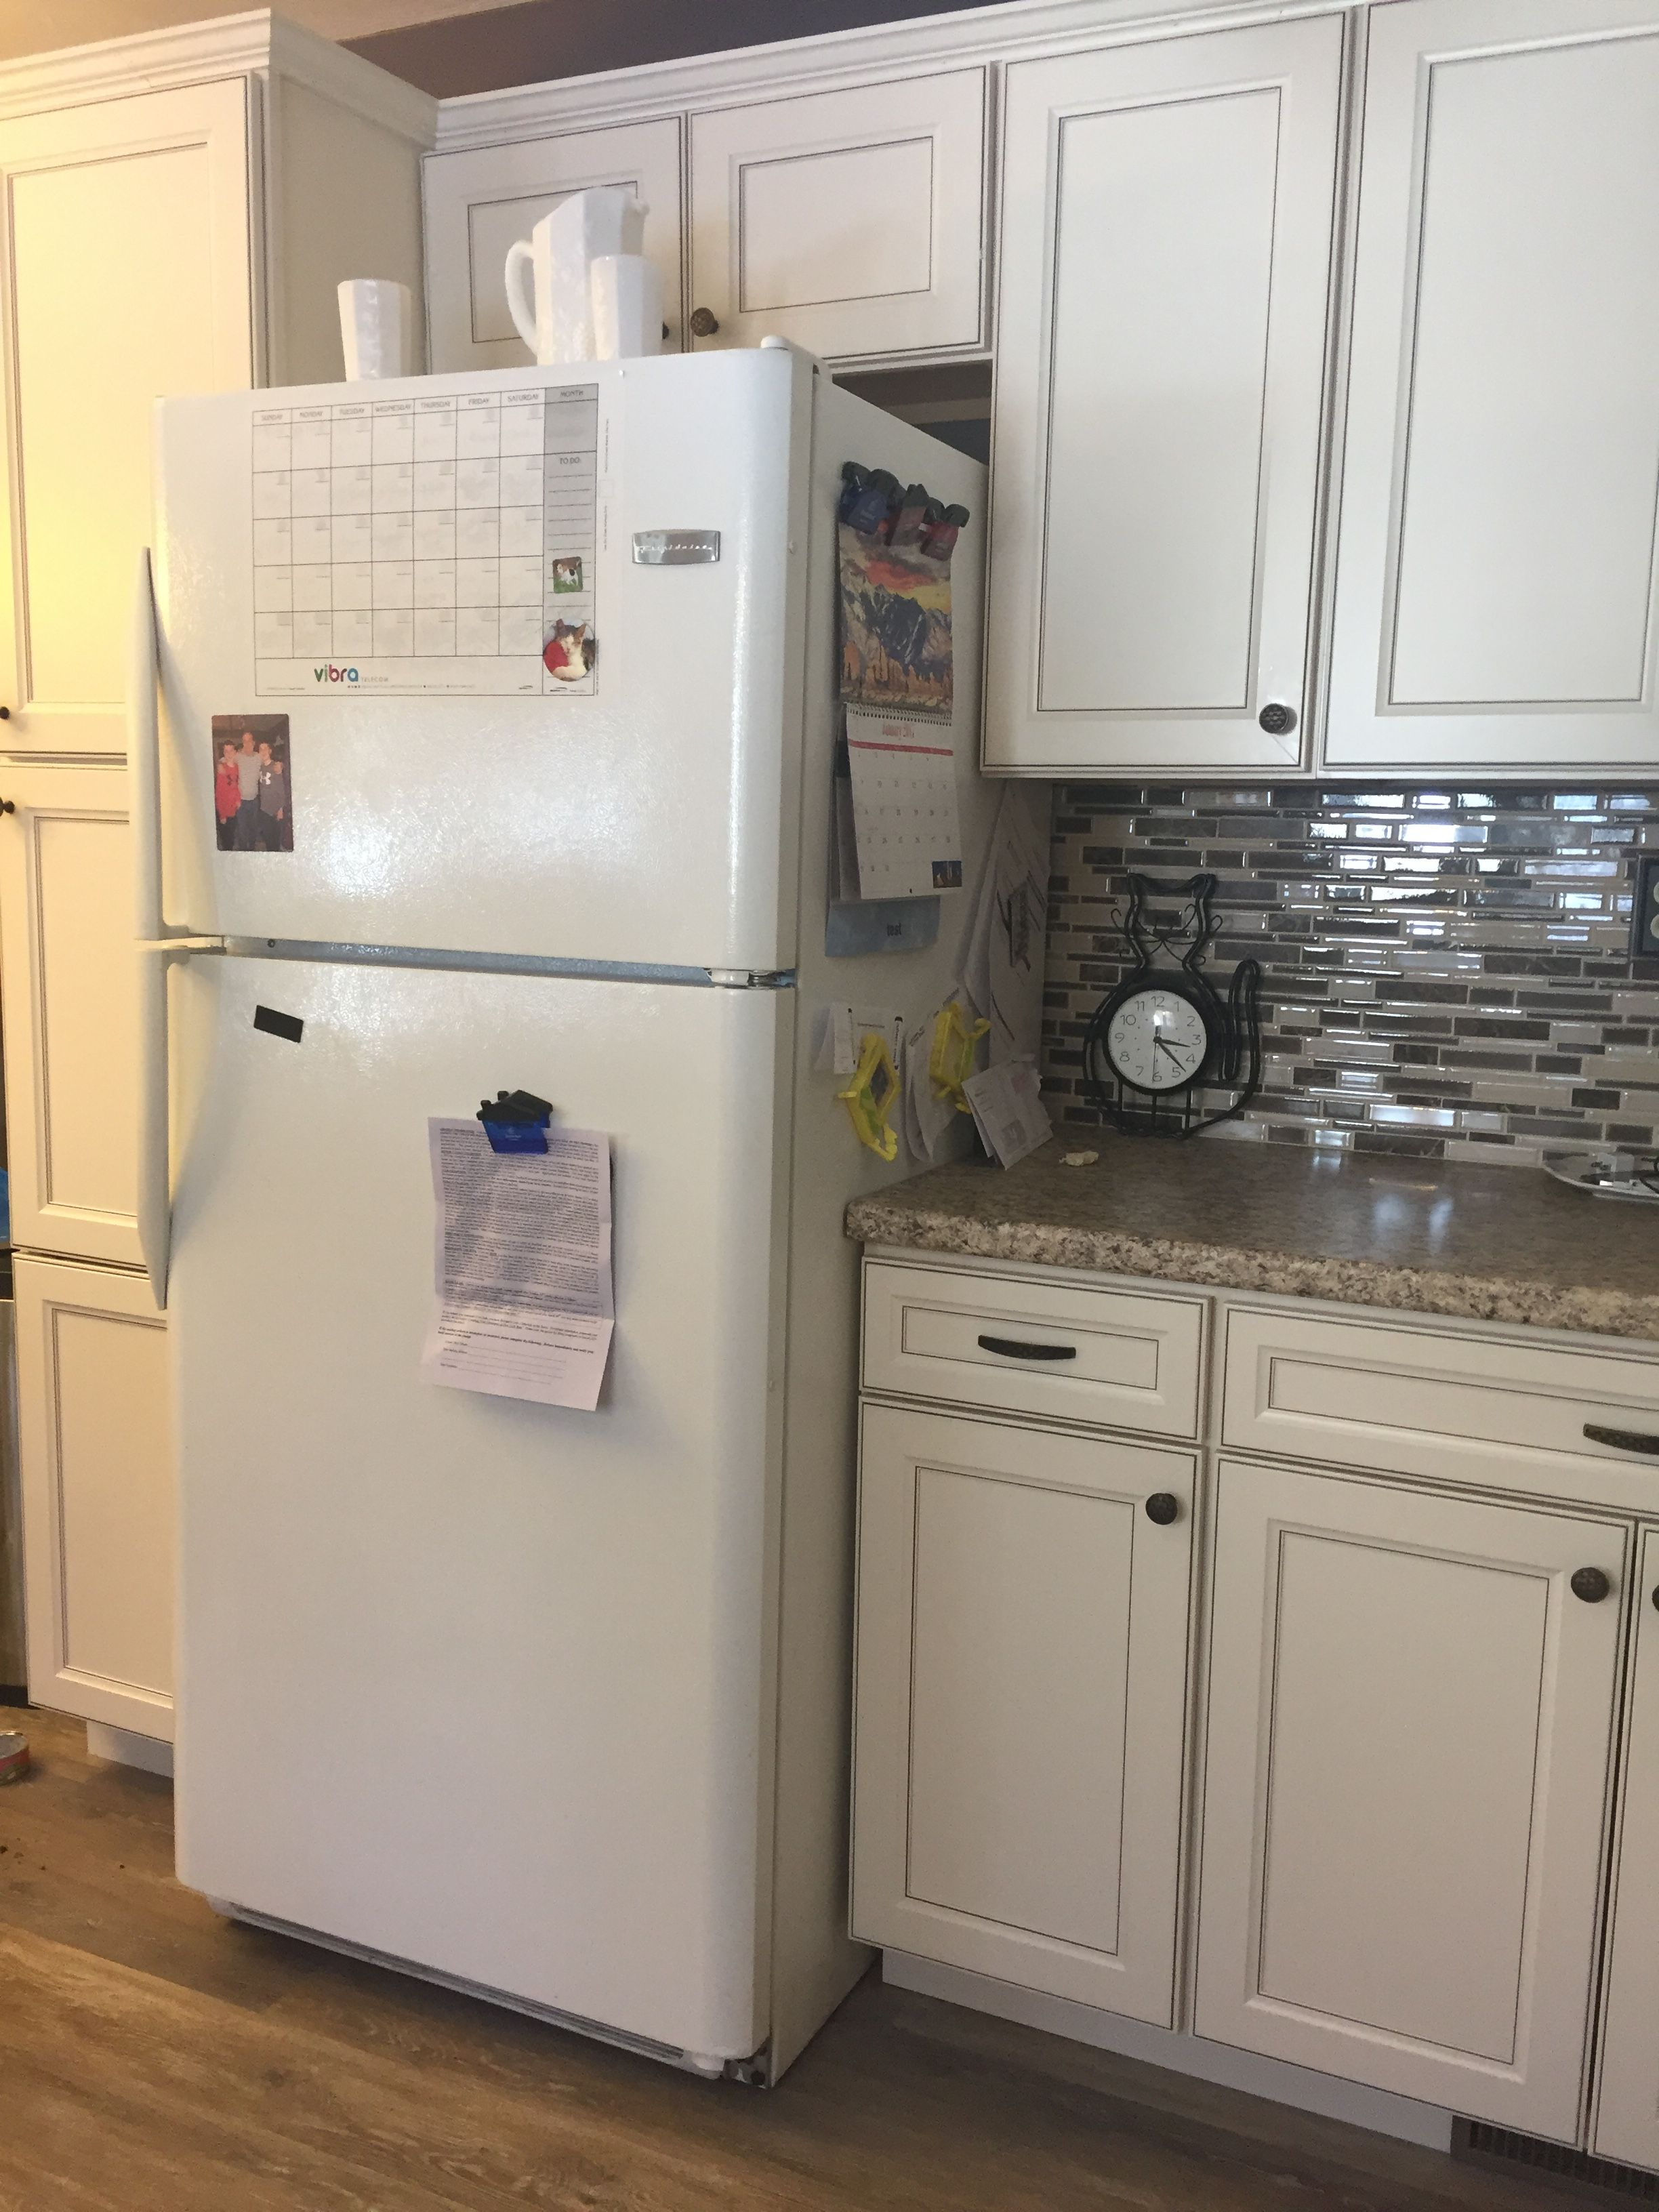 Download Wallpaper Lowes White Kitchen Cabinets In Stock